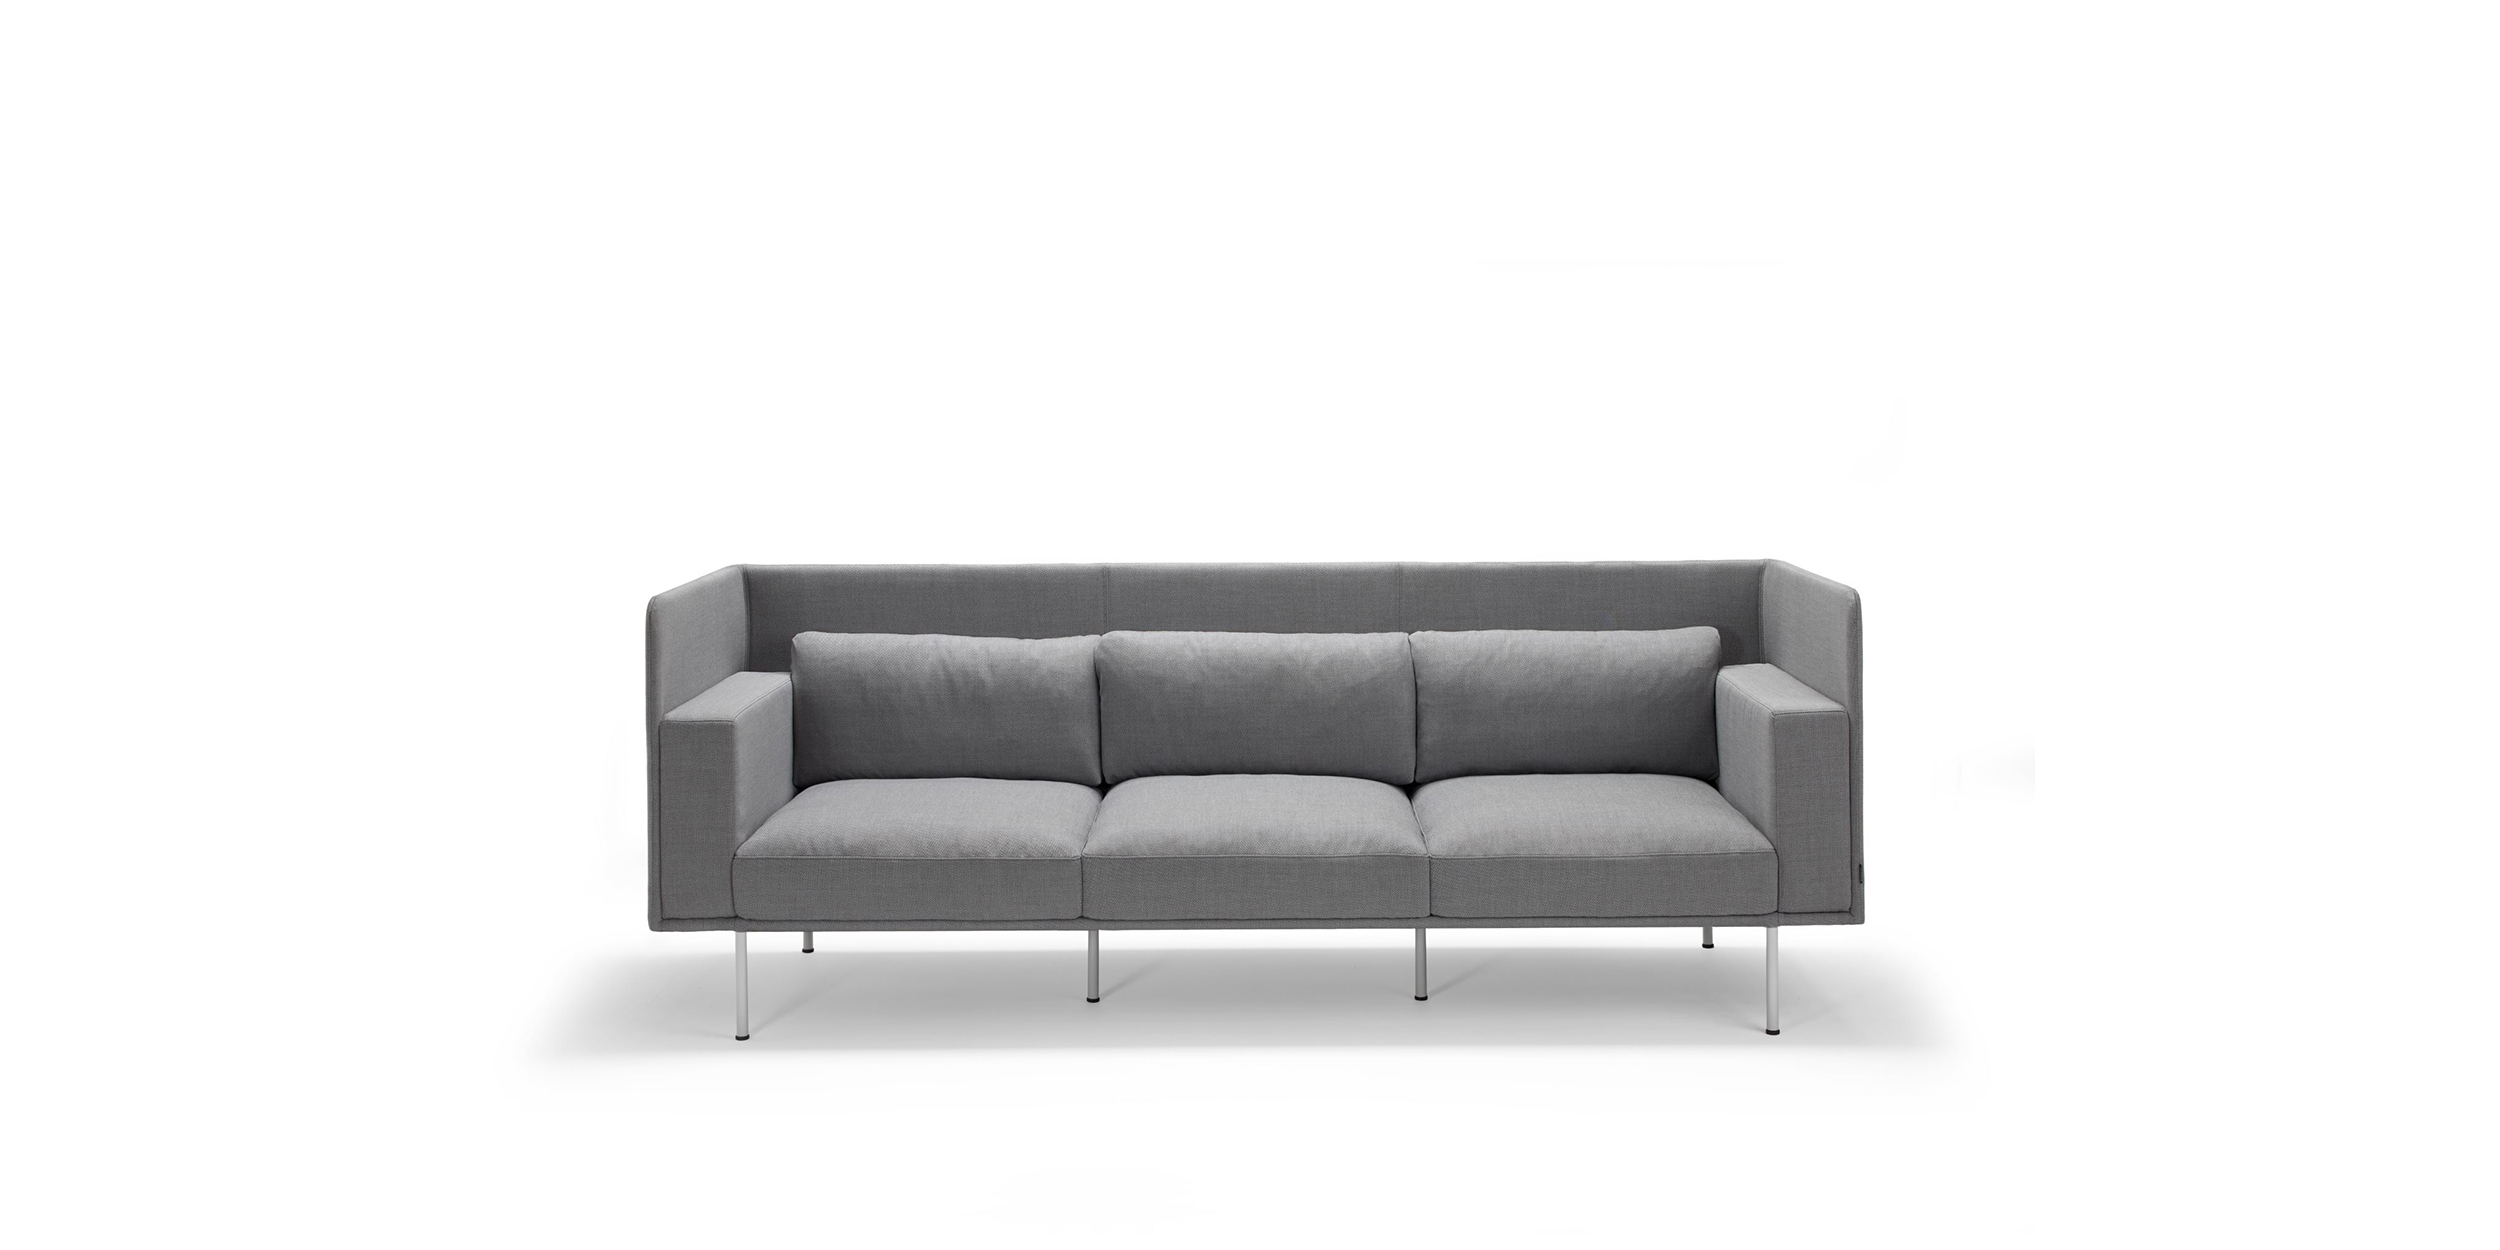 Varilounge High, Sofa system by Christophe Pillet